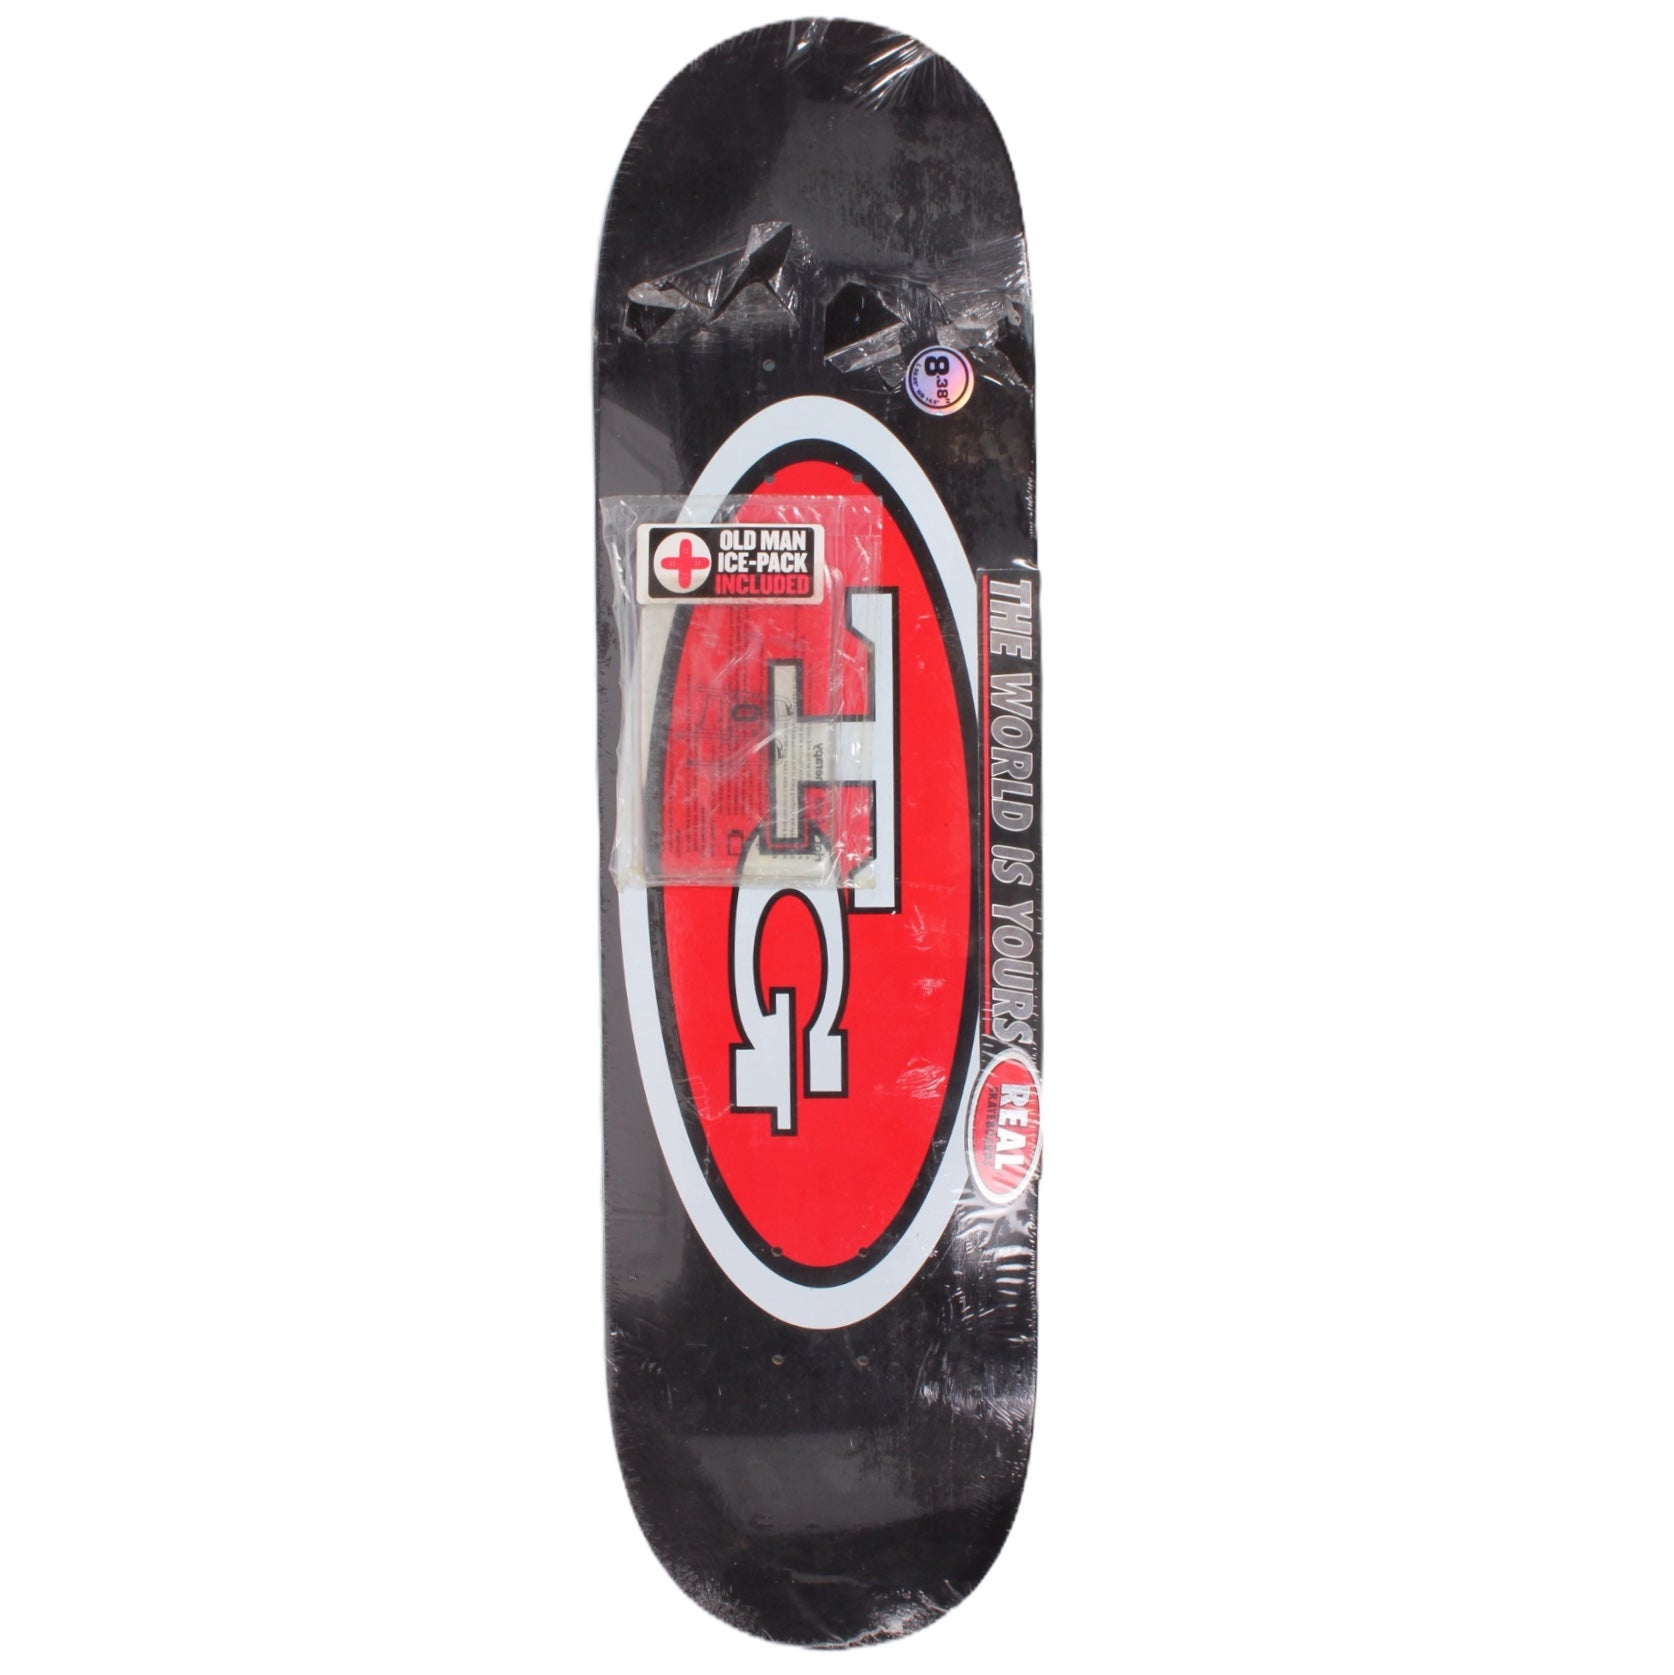 Overripe Real Deck Tommy Guerrero TG with Ice Pack 2015